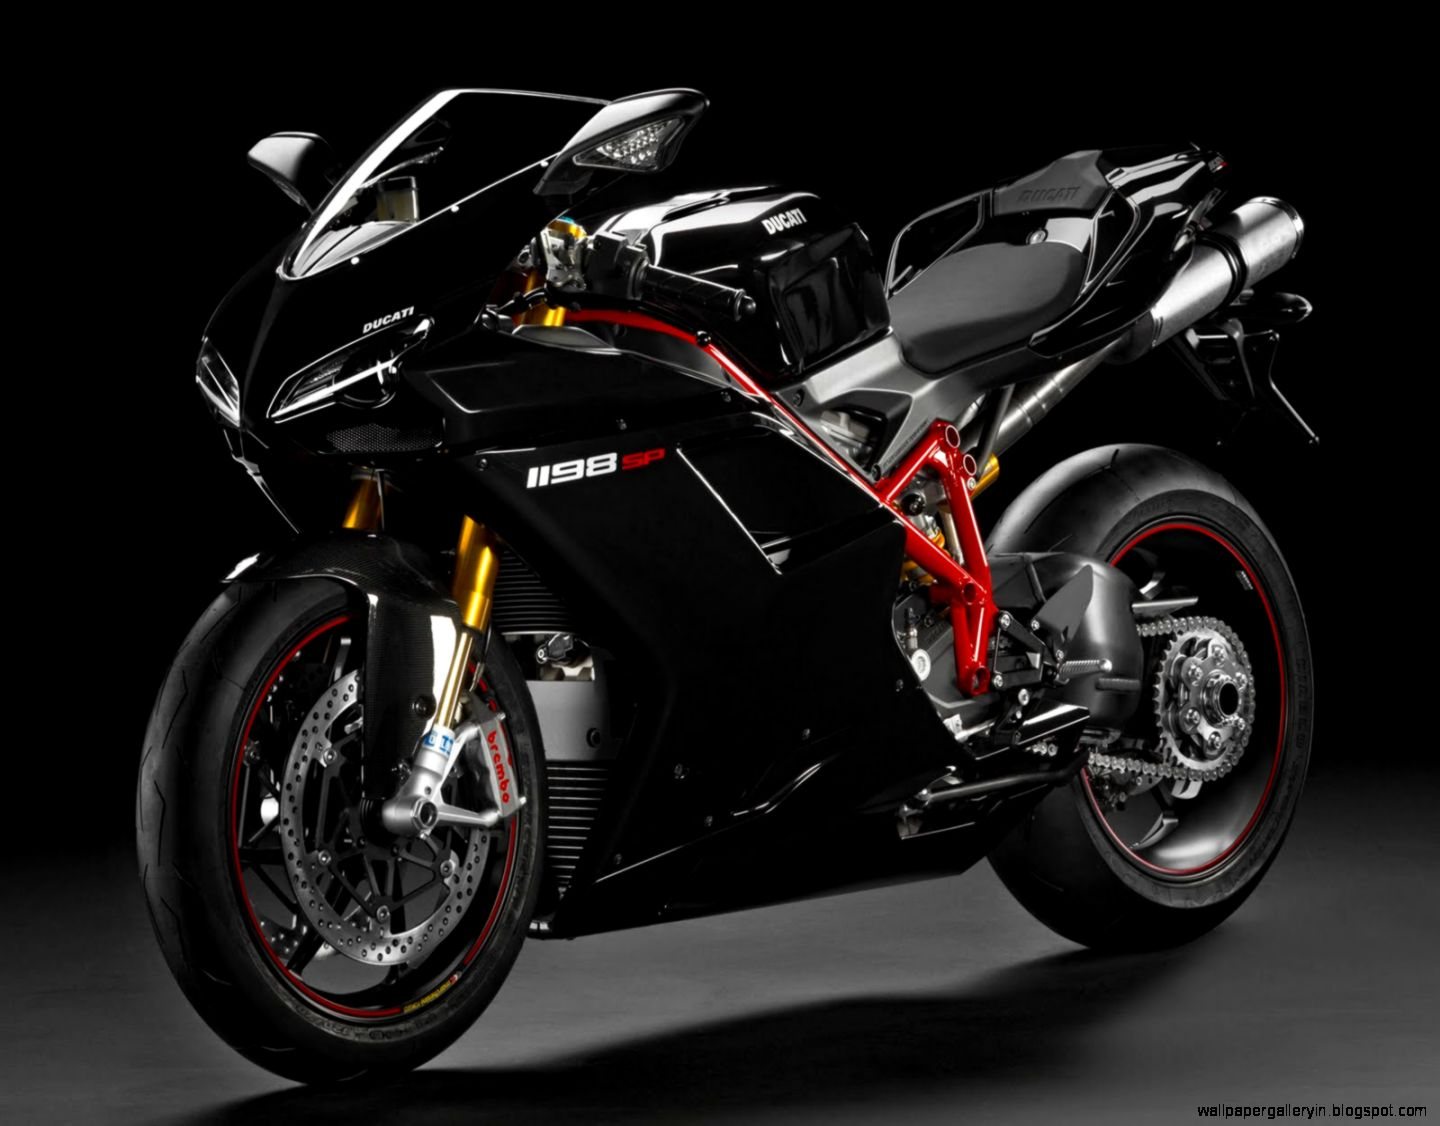 Ducati Superbike Black Color In Room Wallpaper Desktop  Free High